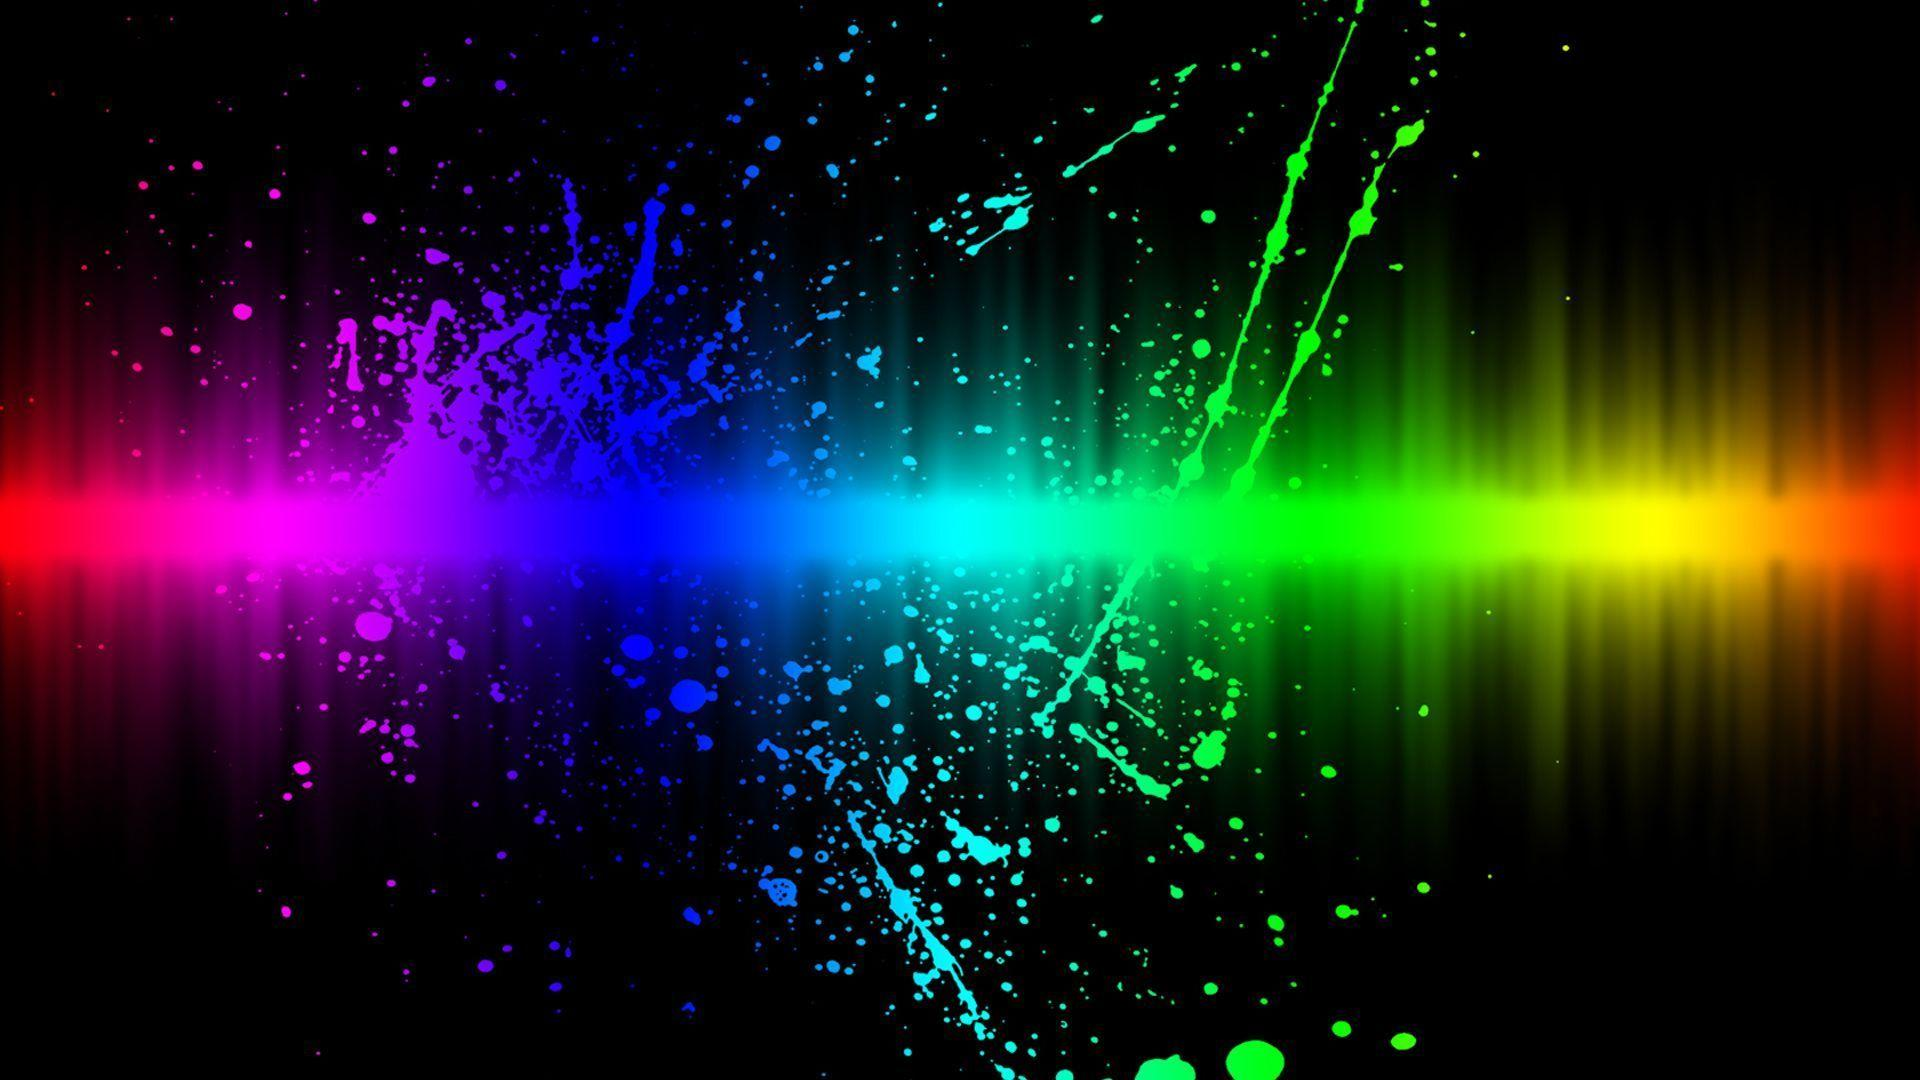 cool rainbow backgrounds wallpapers - photo #3